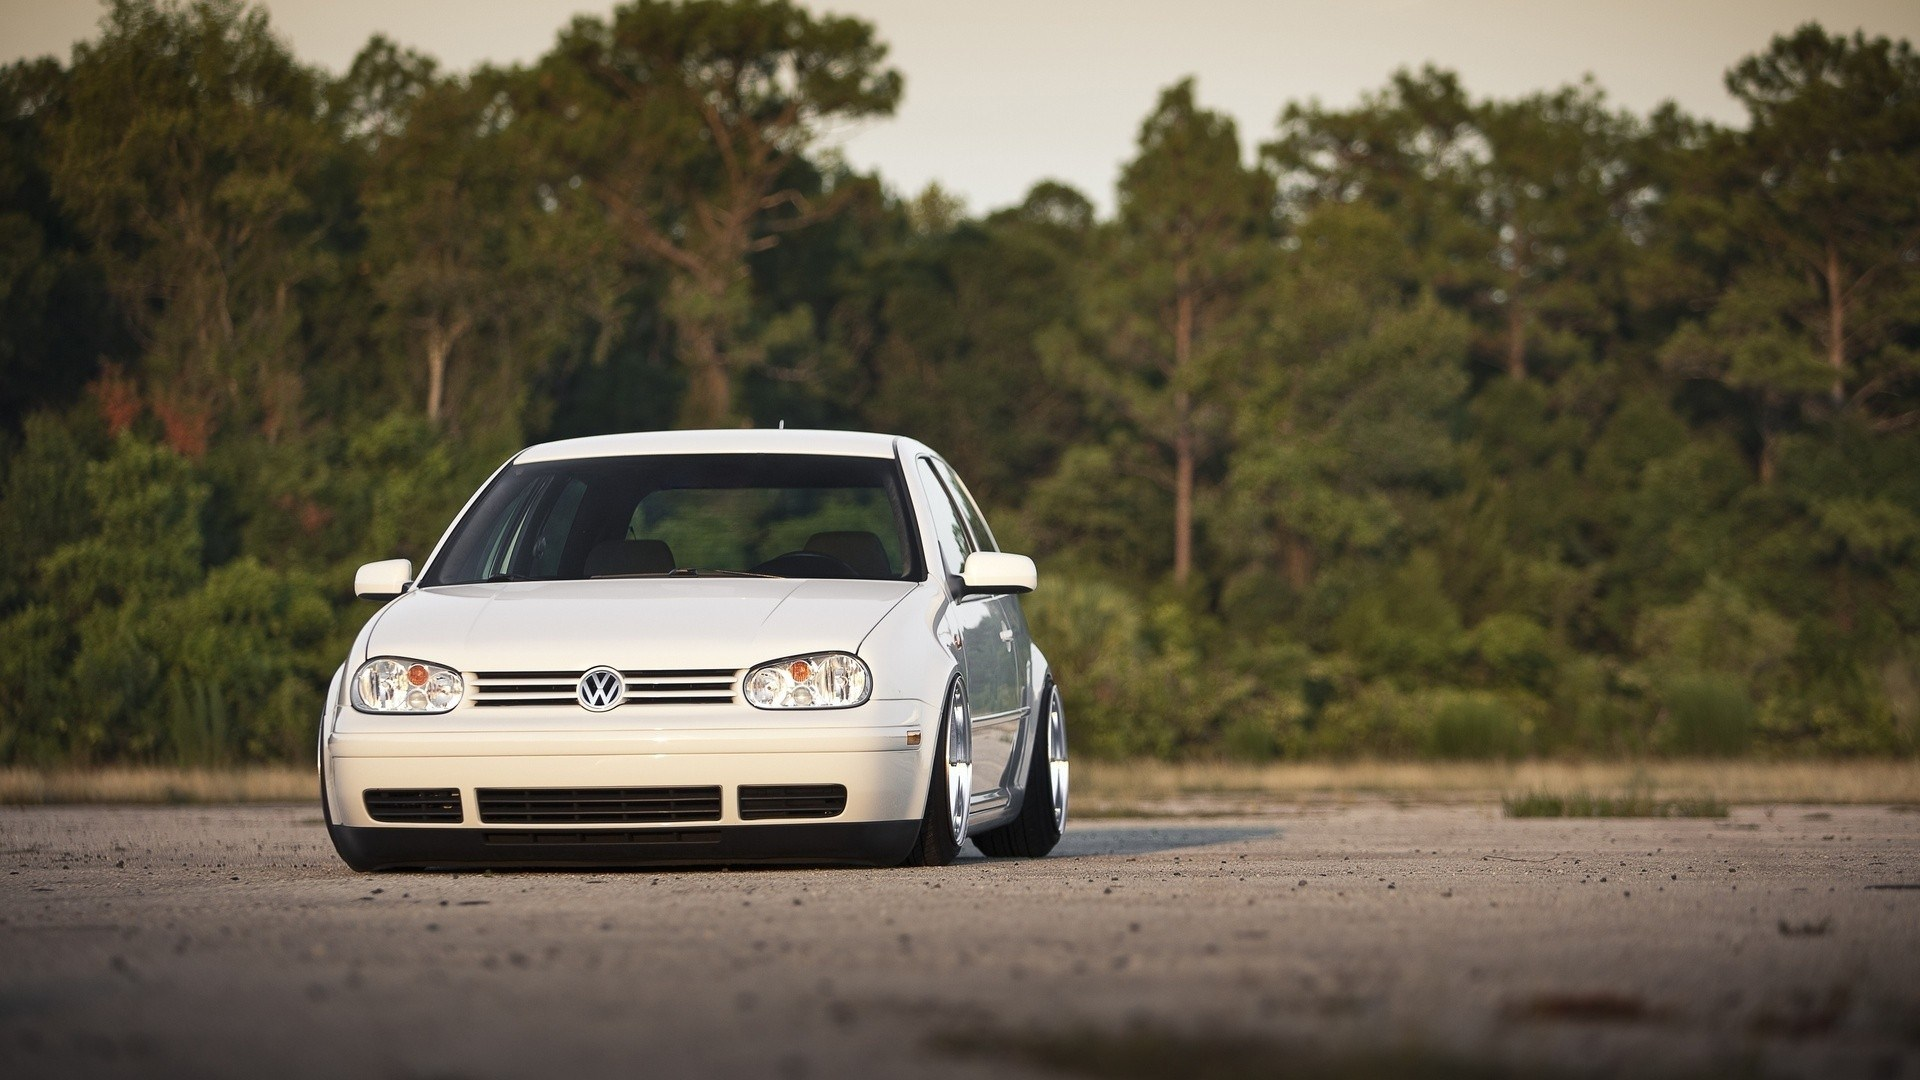 White Volkswagen Golf Wallpaper 43729